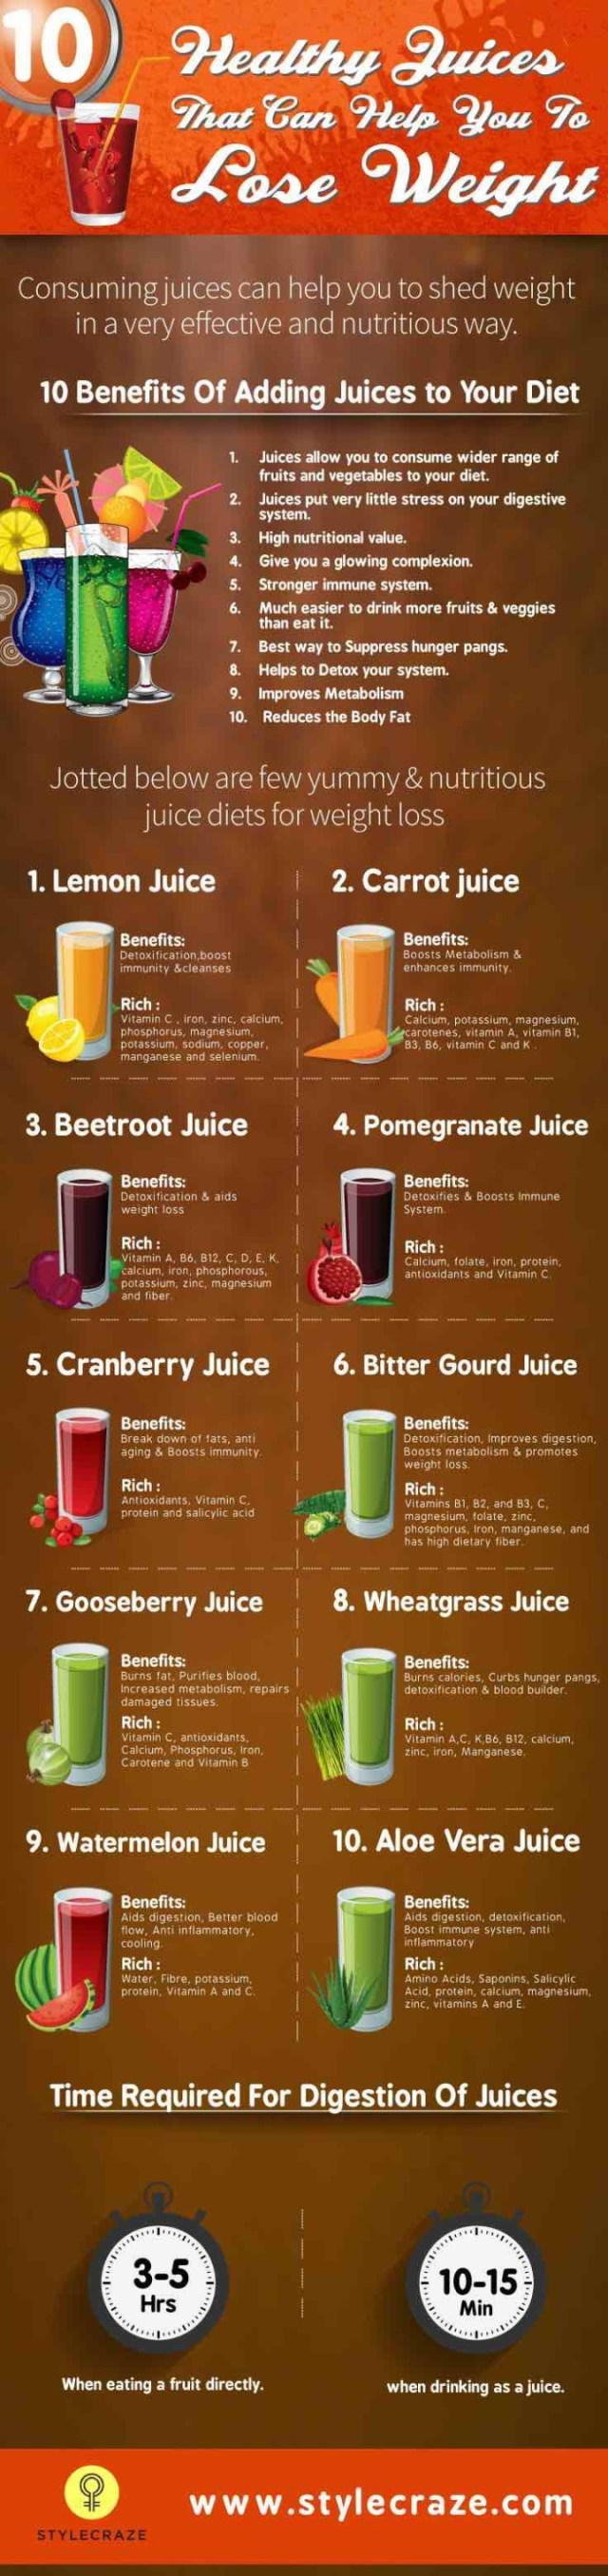 juicing-recipes-1-05052015nz